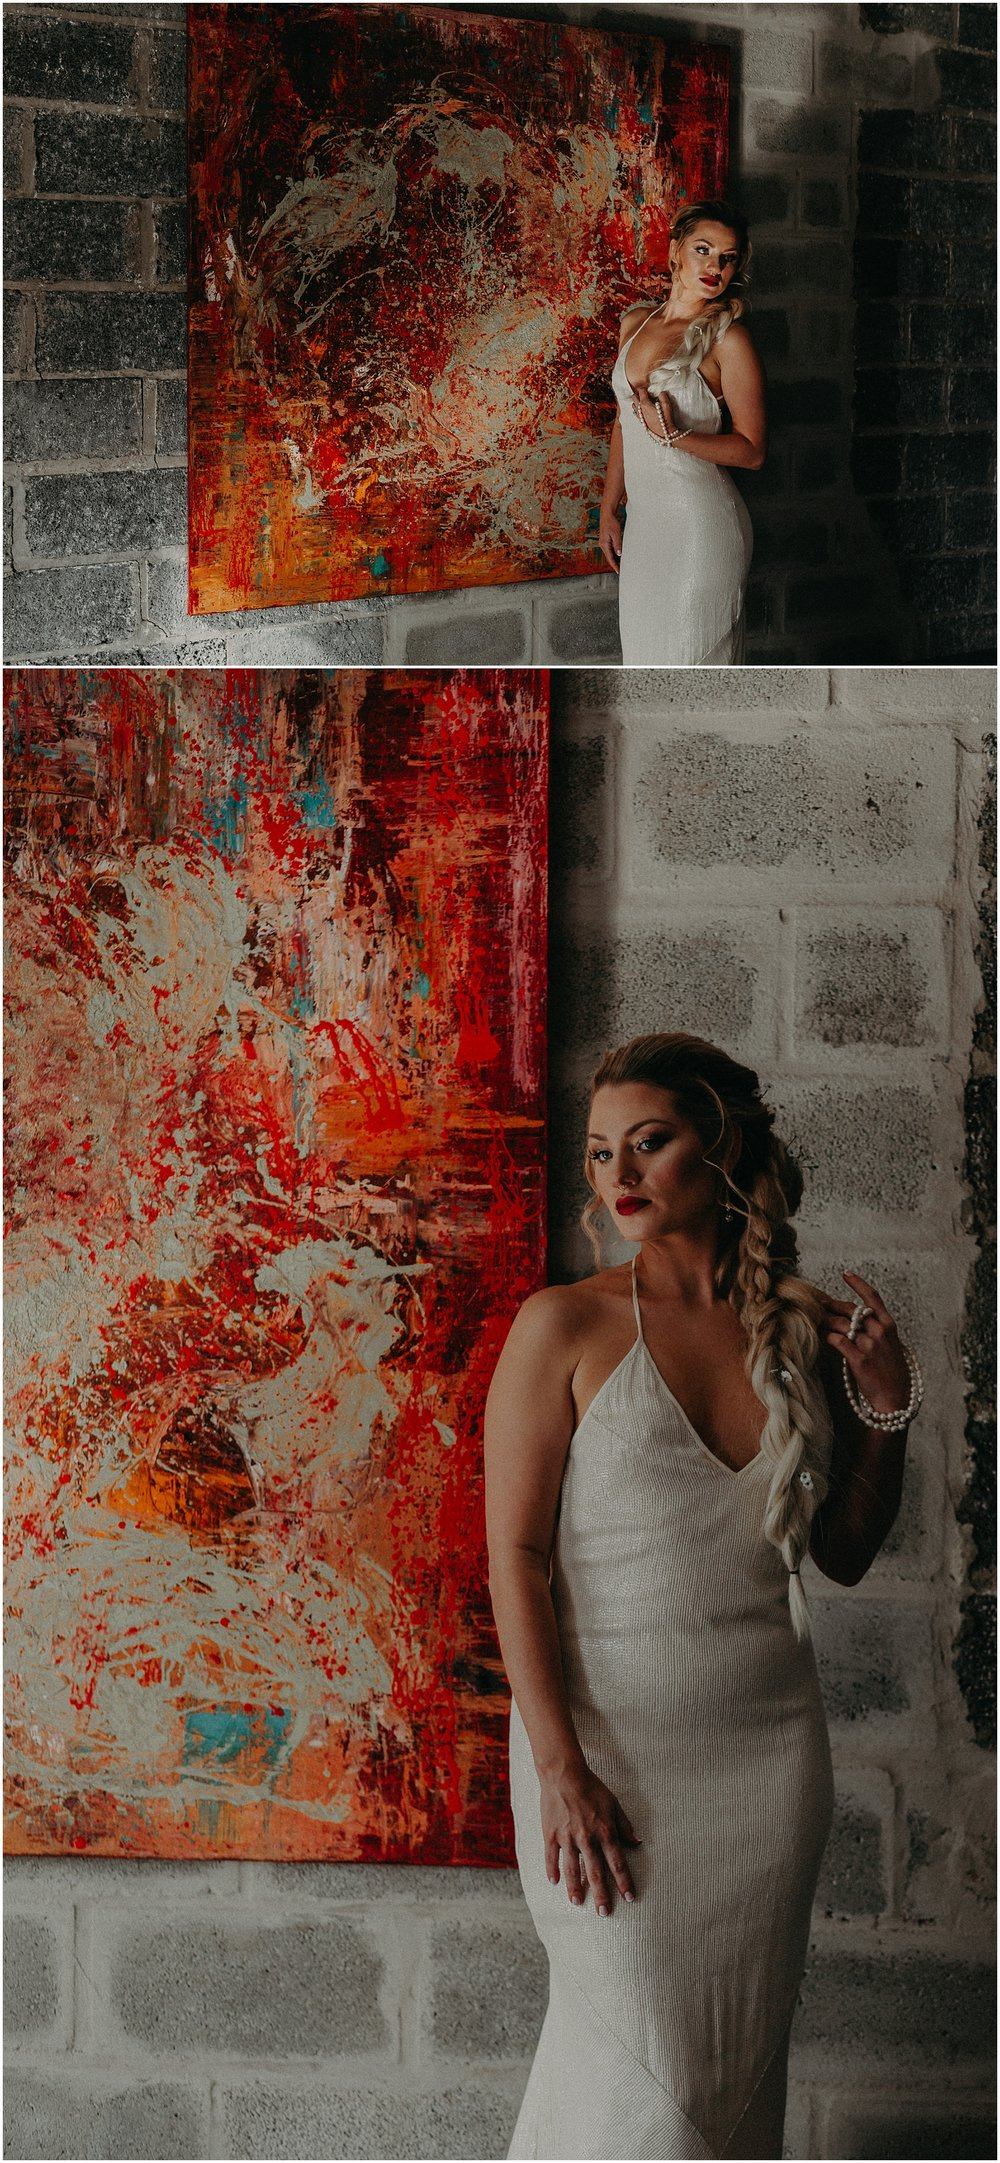 styled shoot-bridal portraits-portraits-bride-rock and roll-industrial-urban-wedding-inspiration-nj-new jersey-nyc-new york city-art-diy wedding_0057.jpg